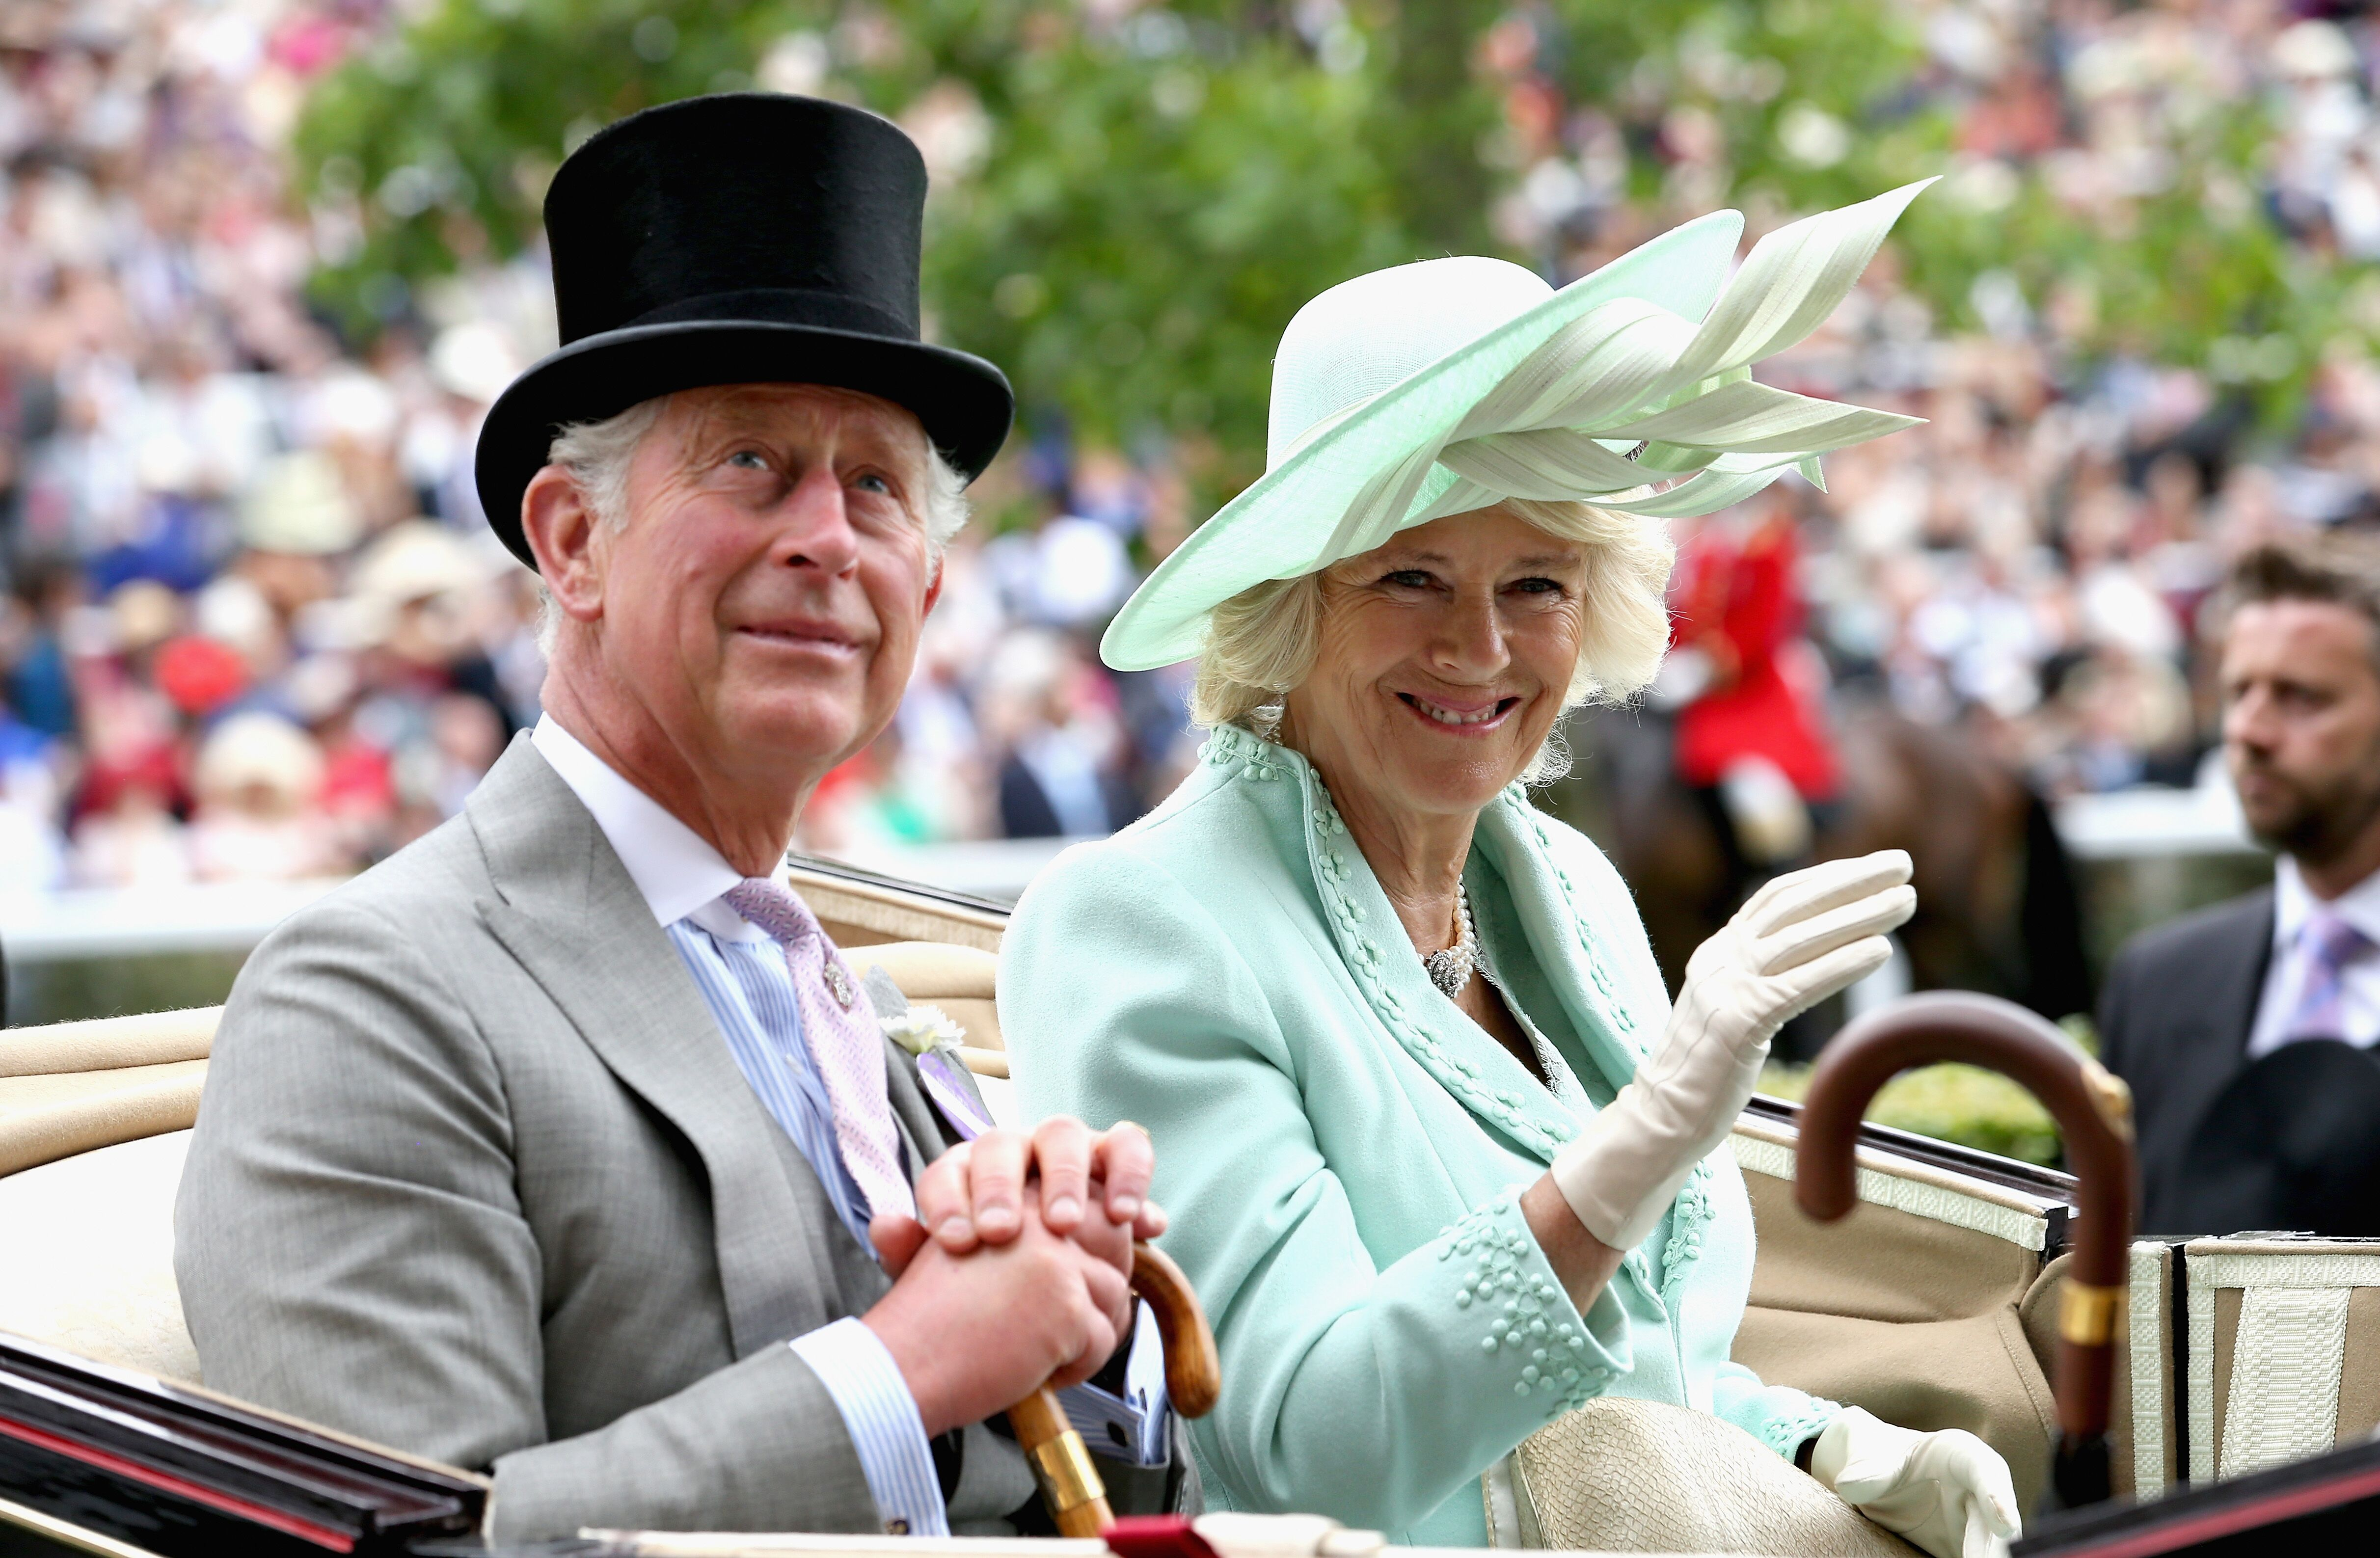 Prince Charles & Camilla Parker Bowles. Image Credit: Getty Images